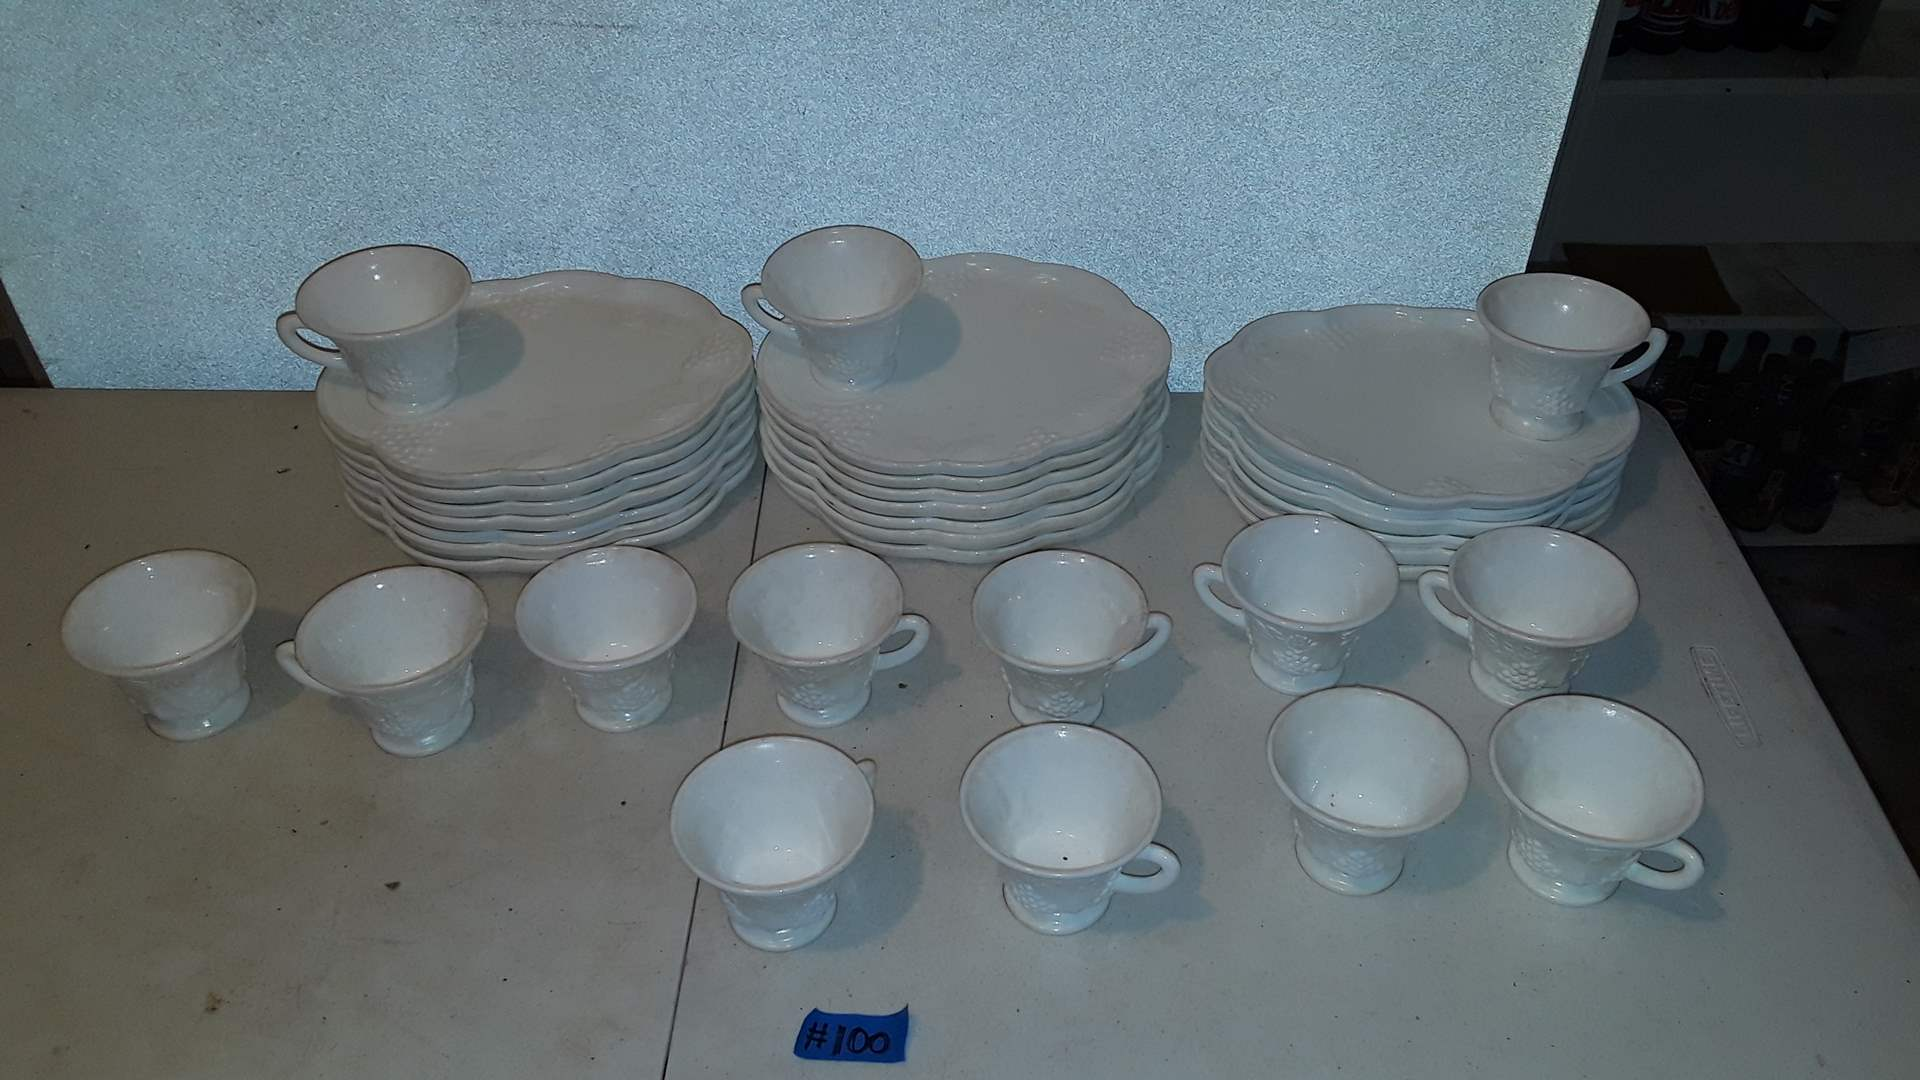 Lot # 100 INDIANA GLASS GRAPES MILK GLASS SNACK PLATES WITH CUPS, 20 PLATES, 14 CUPS